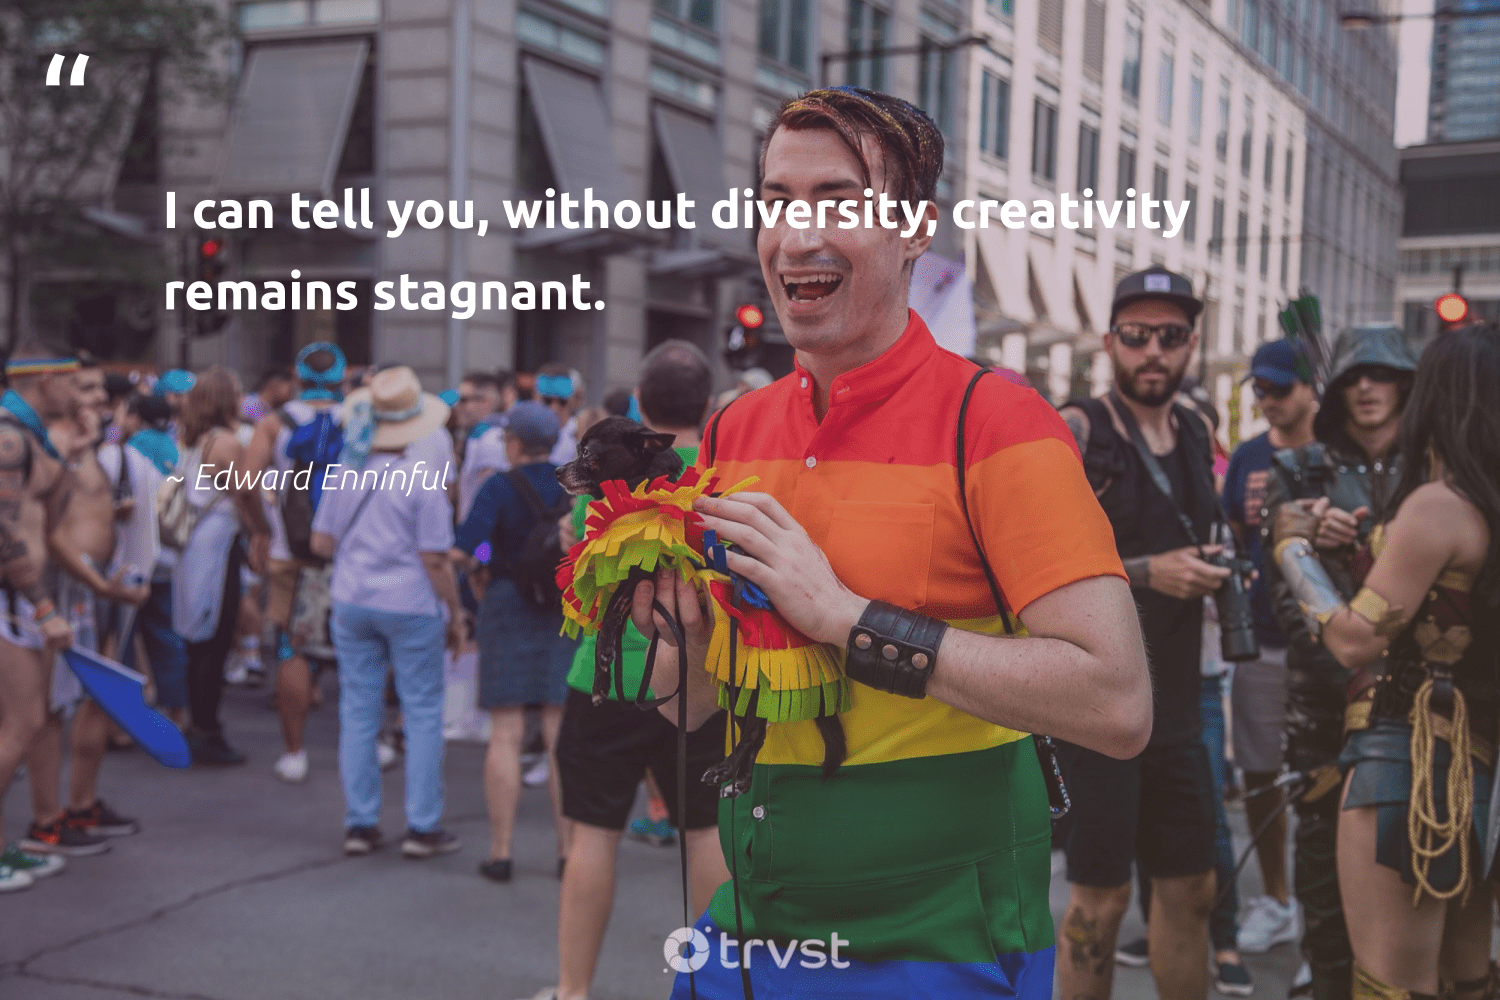 """I can tell you, without diversity, creativity remains stagnant.""  - Edward Enninful #trvst #quotes #diversity #creativity #discrimination #representationmatters #socialchange #bethechange #thinkgreen #inclusion #weareallone #socialgood"